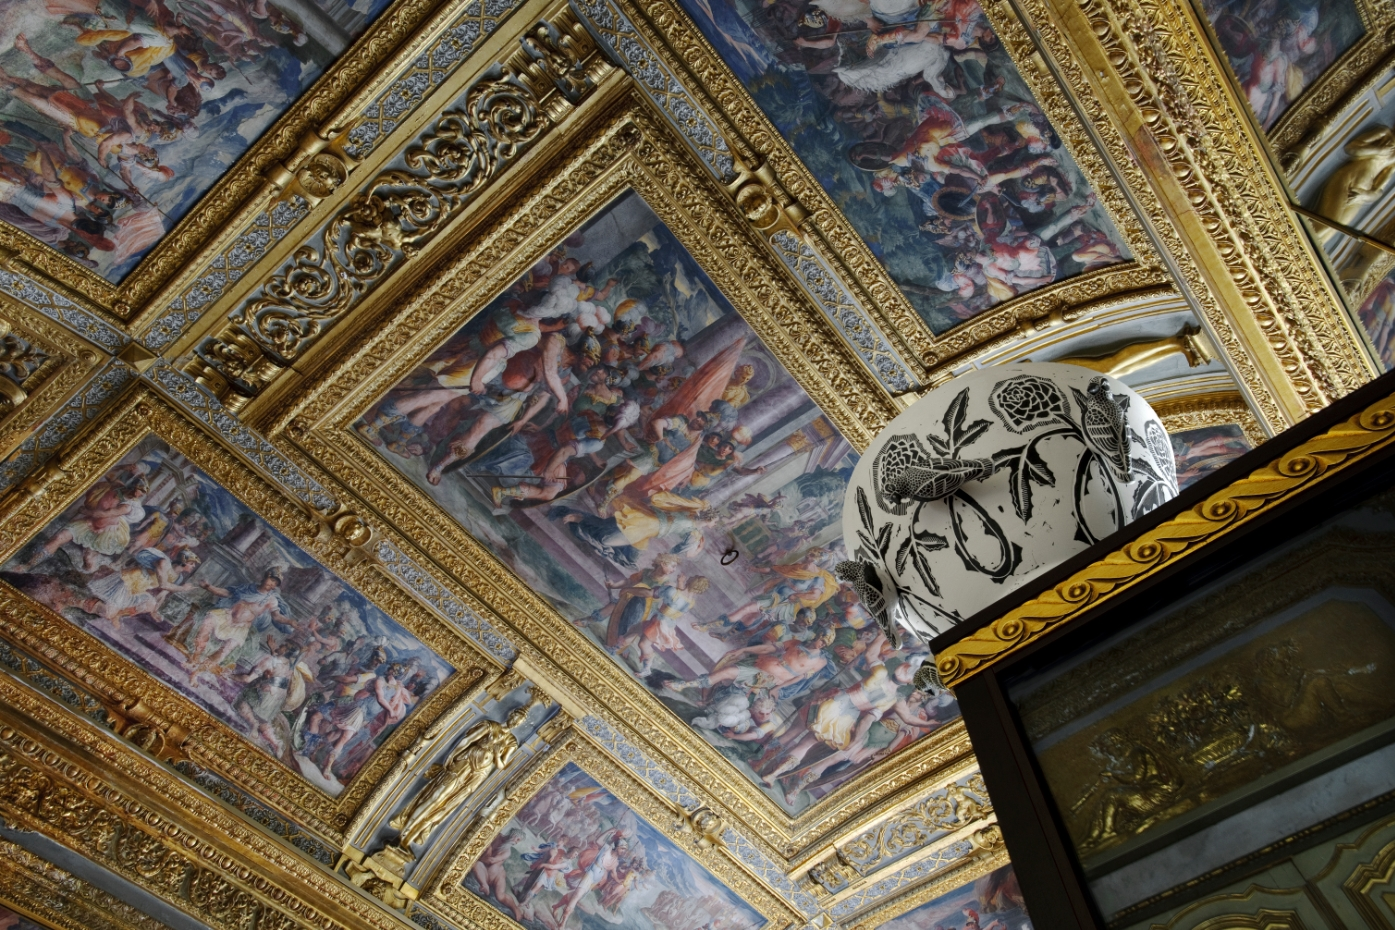 These are the ceilings of the store, with frescoes from the Punic War that go back five centuries in time